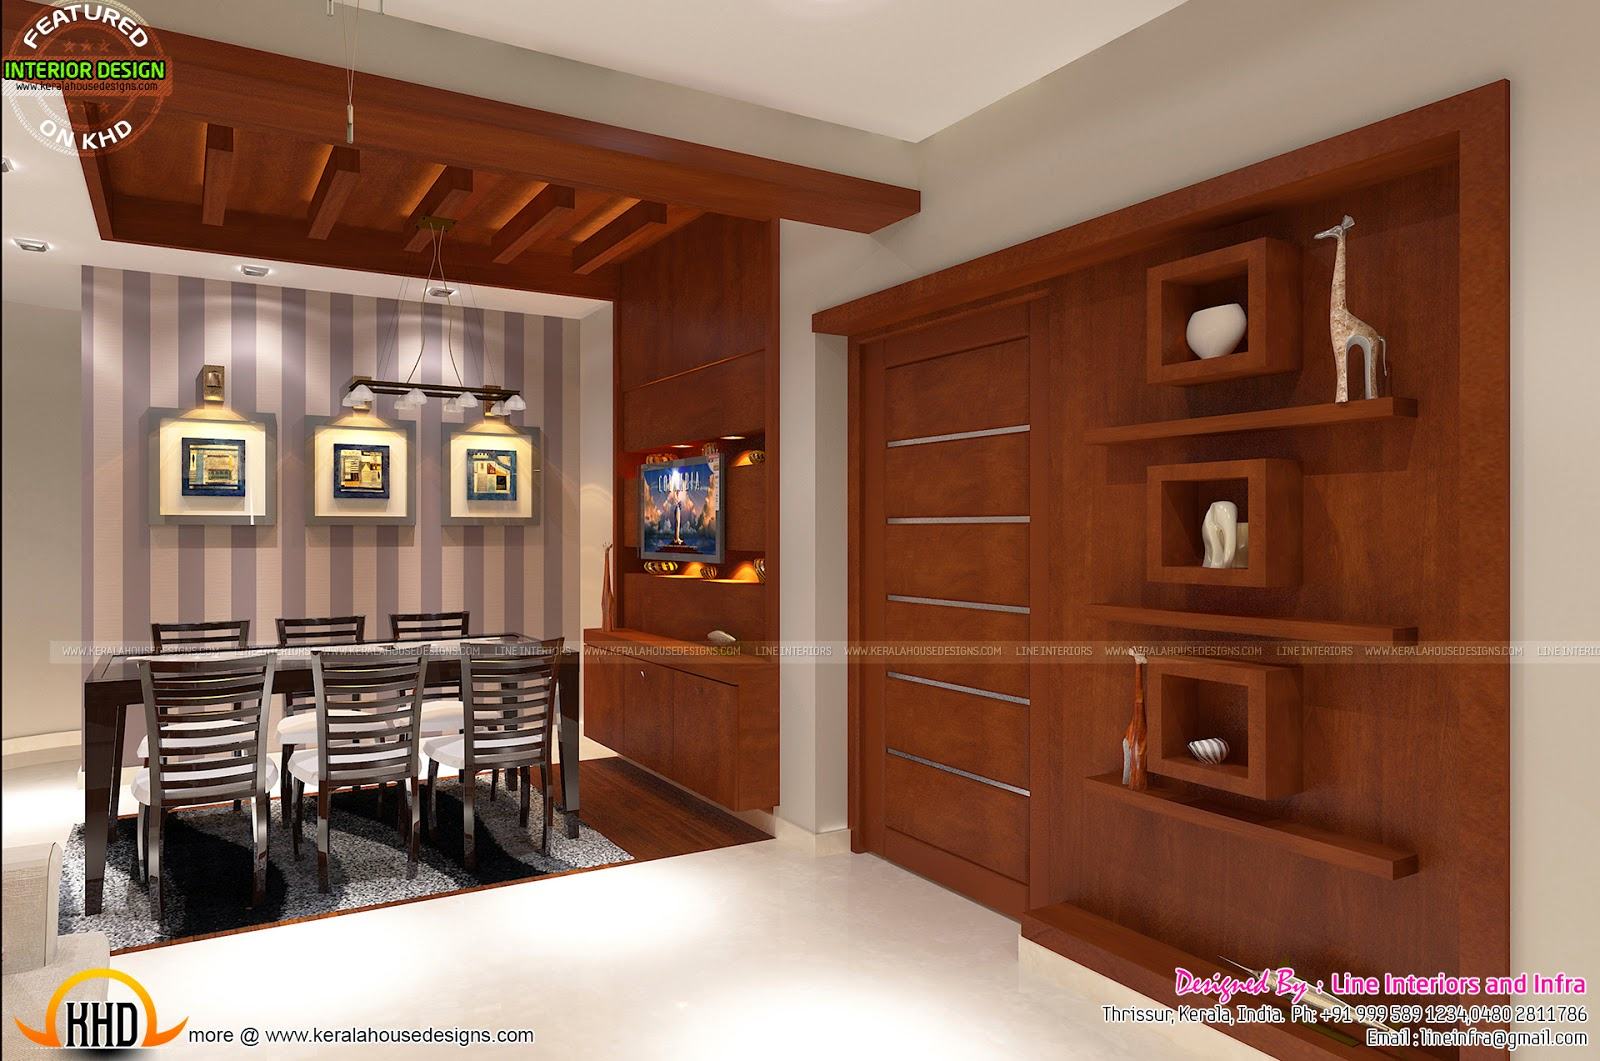 Interiors design by line interiors and infra kerala home for Interior designs kerala